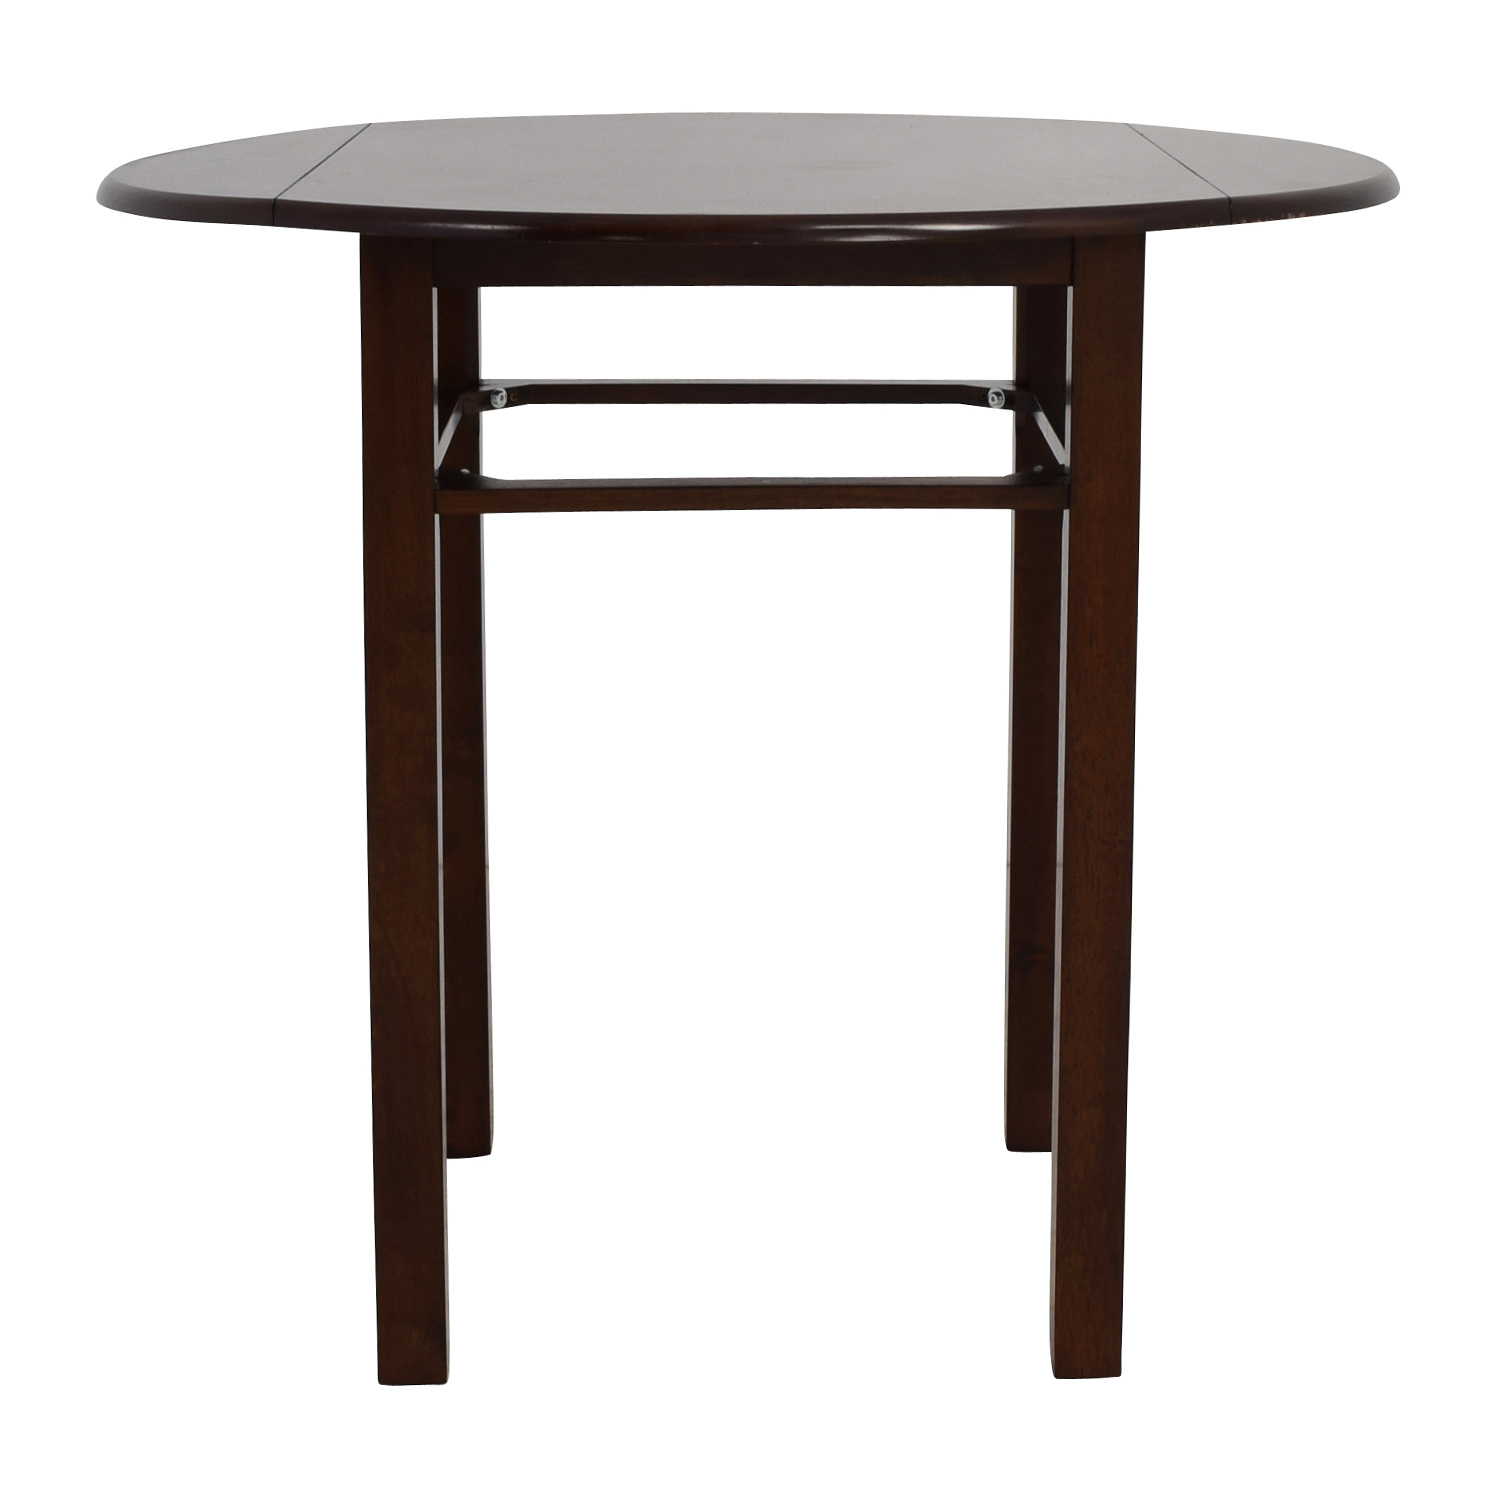 Whalen Whalen Round Drop Leaf Dining Table coupon